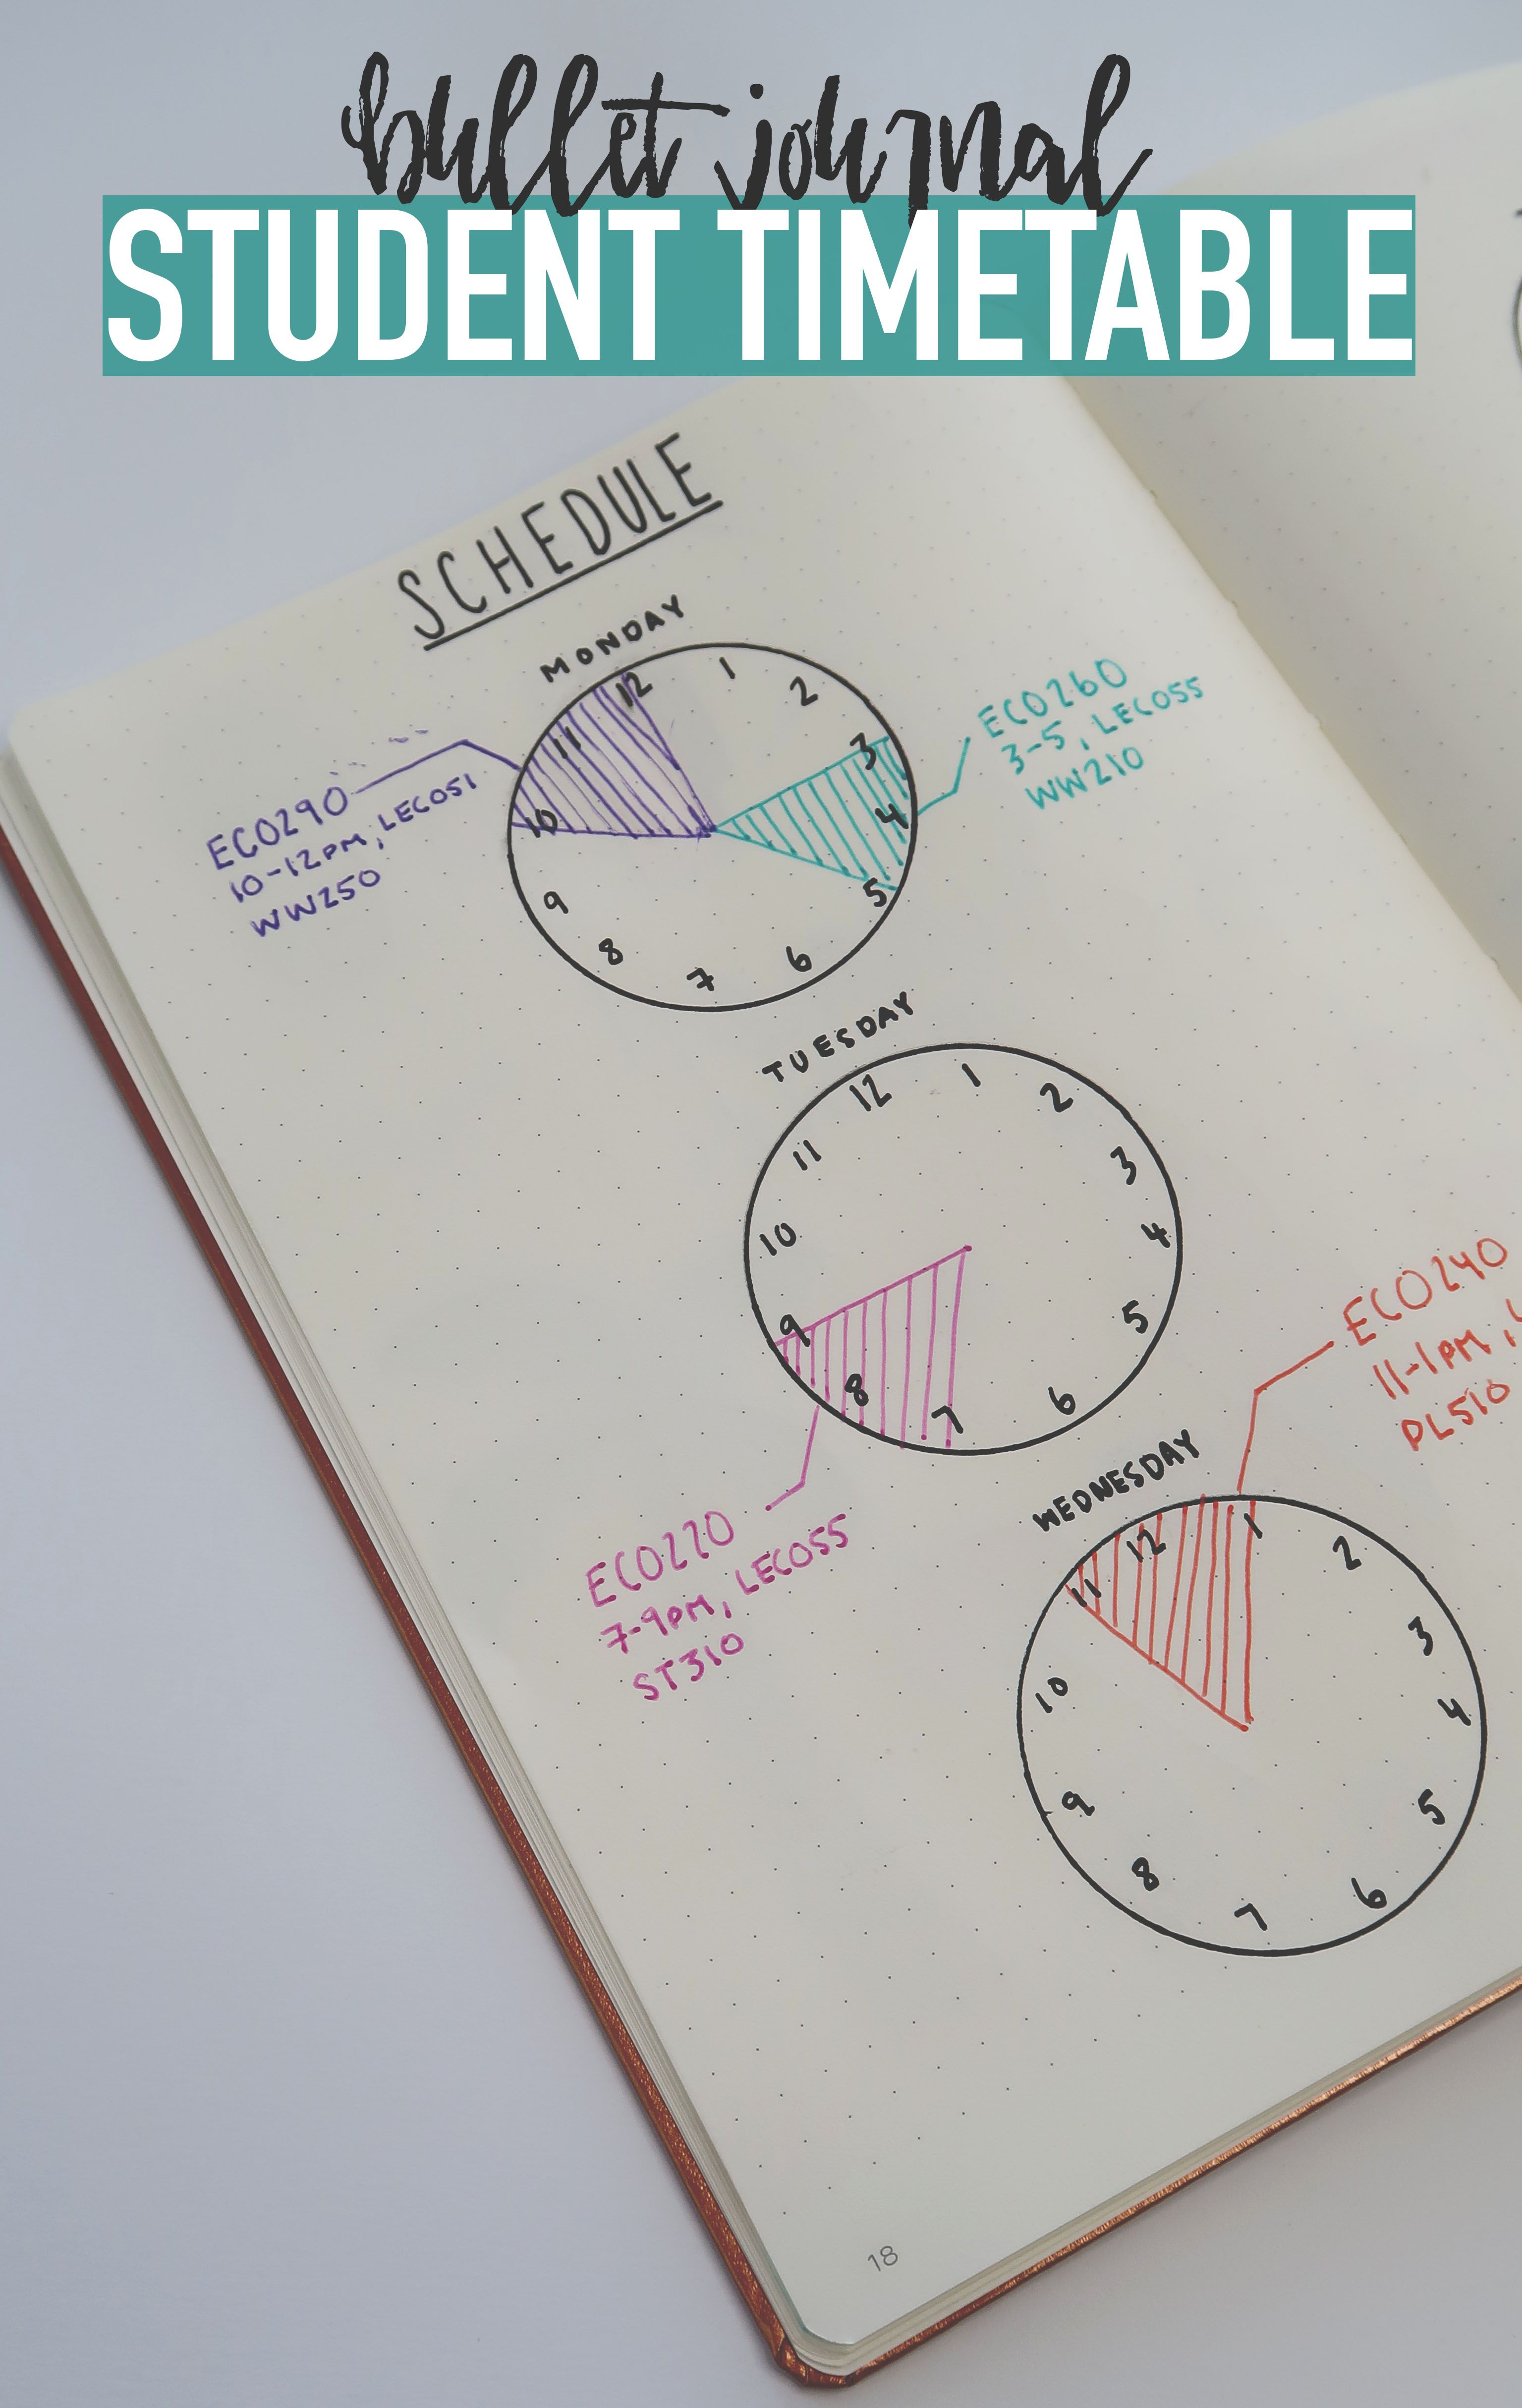 Bullet Journal STUDENT TIMESTABLE...Use clocks to keep track of your schedule so you're always on time :)